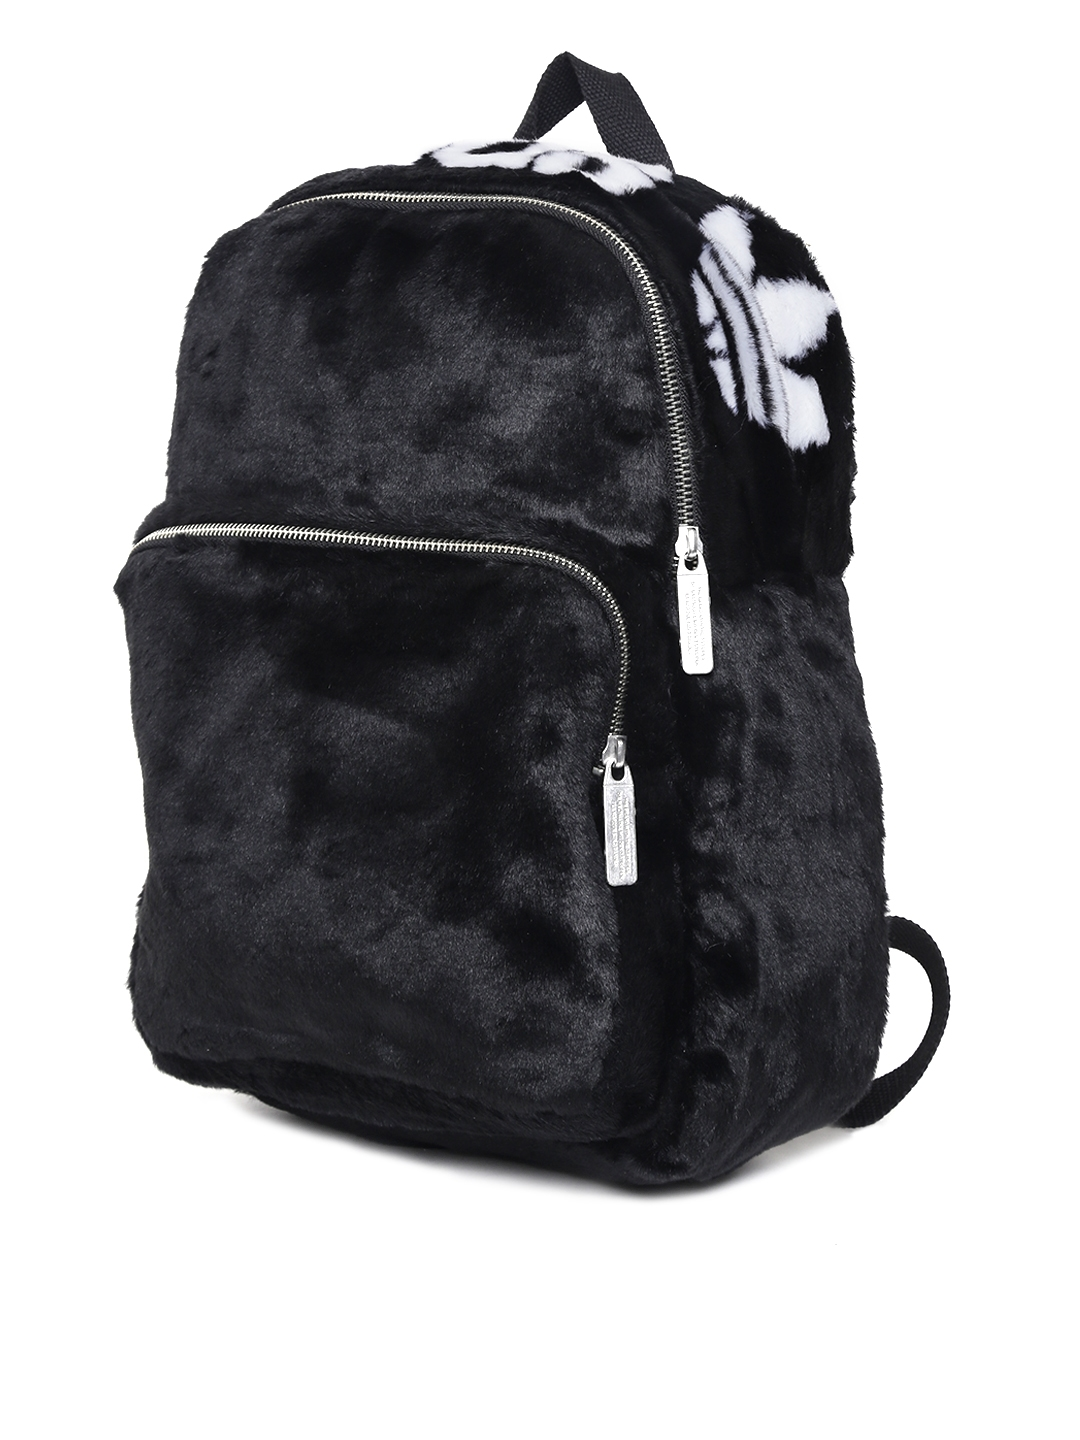 9a9e11a555d8 Buy ADIDAS Originals Unisex Black Classic S Faux Fur Backpack ...